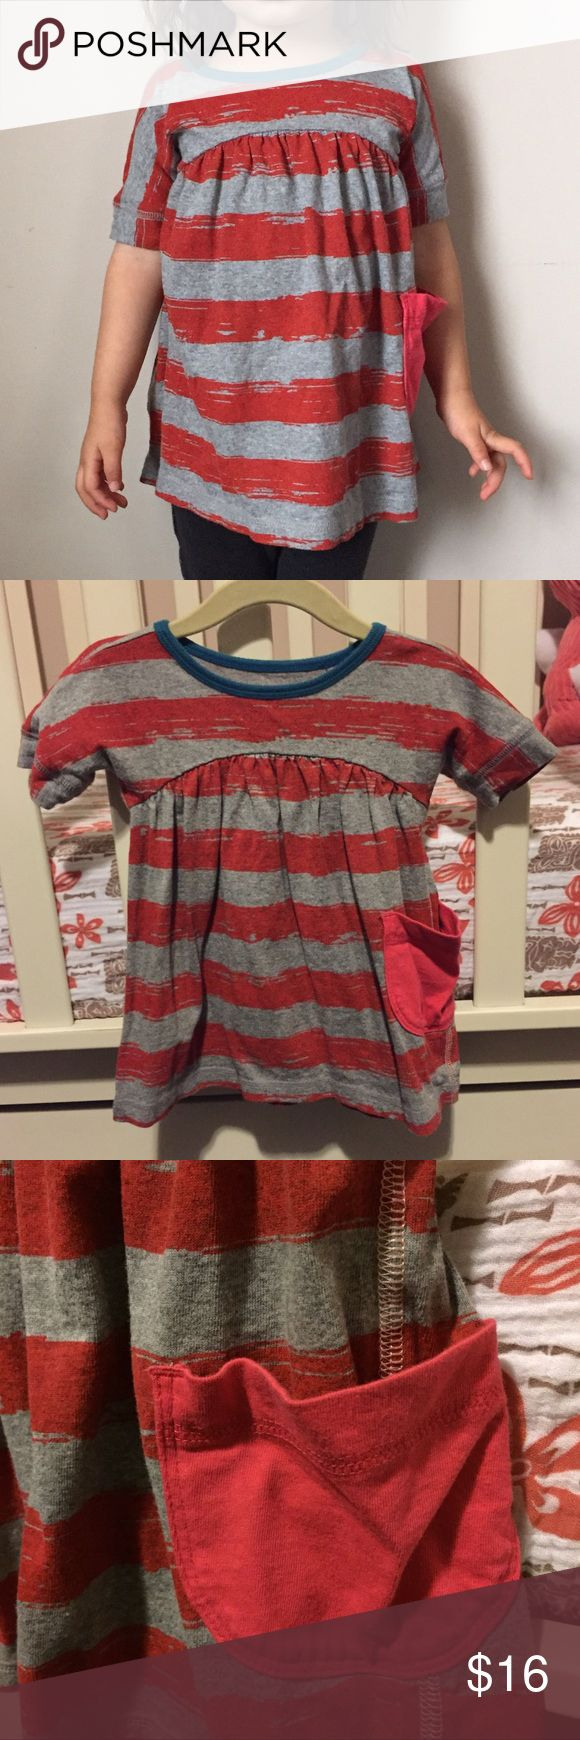 Tea Collection Gray & Red Striped Dress Tea Collection Gray & Red Striped Dress with Blue Neckline. EUC, sz 6-12 months. Would be perfect for a patriotic holiday. Only worn one time as we purchased the dress off season and she out grew it by the time she could wear it. Though in hindsight, it could have been worn as a tunic with pants or shorts (daughter is modeling this dress as a tunic at 2yrs 4mths in 2nd photo, over 1 years only in cover photo).   ⭐️ Bundle & Save, Posh Rules Only ⭐️ All…